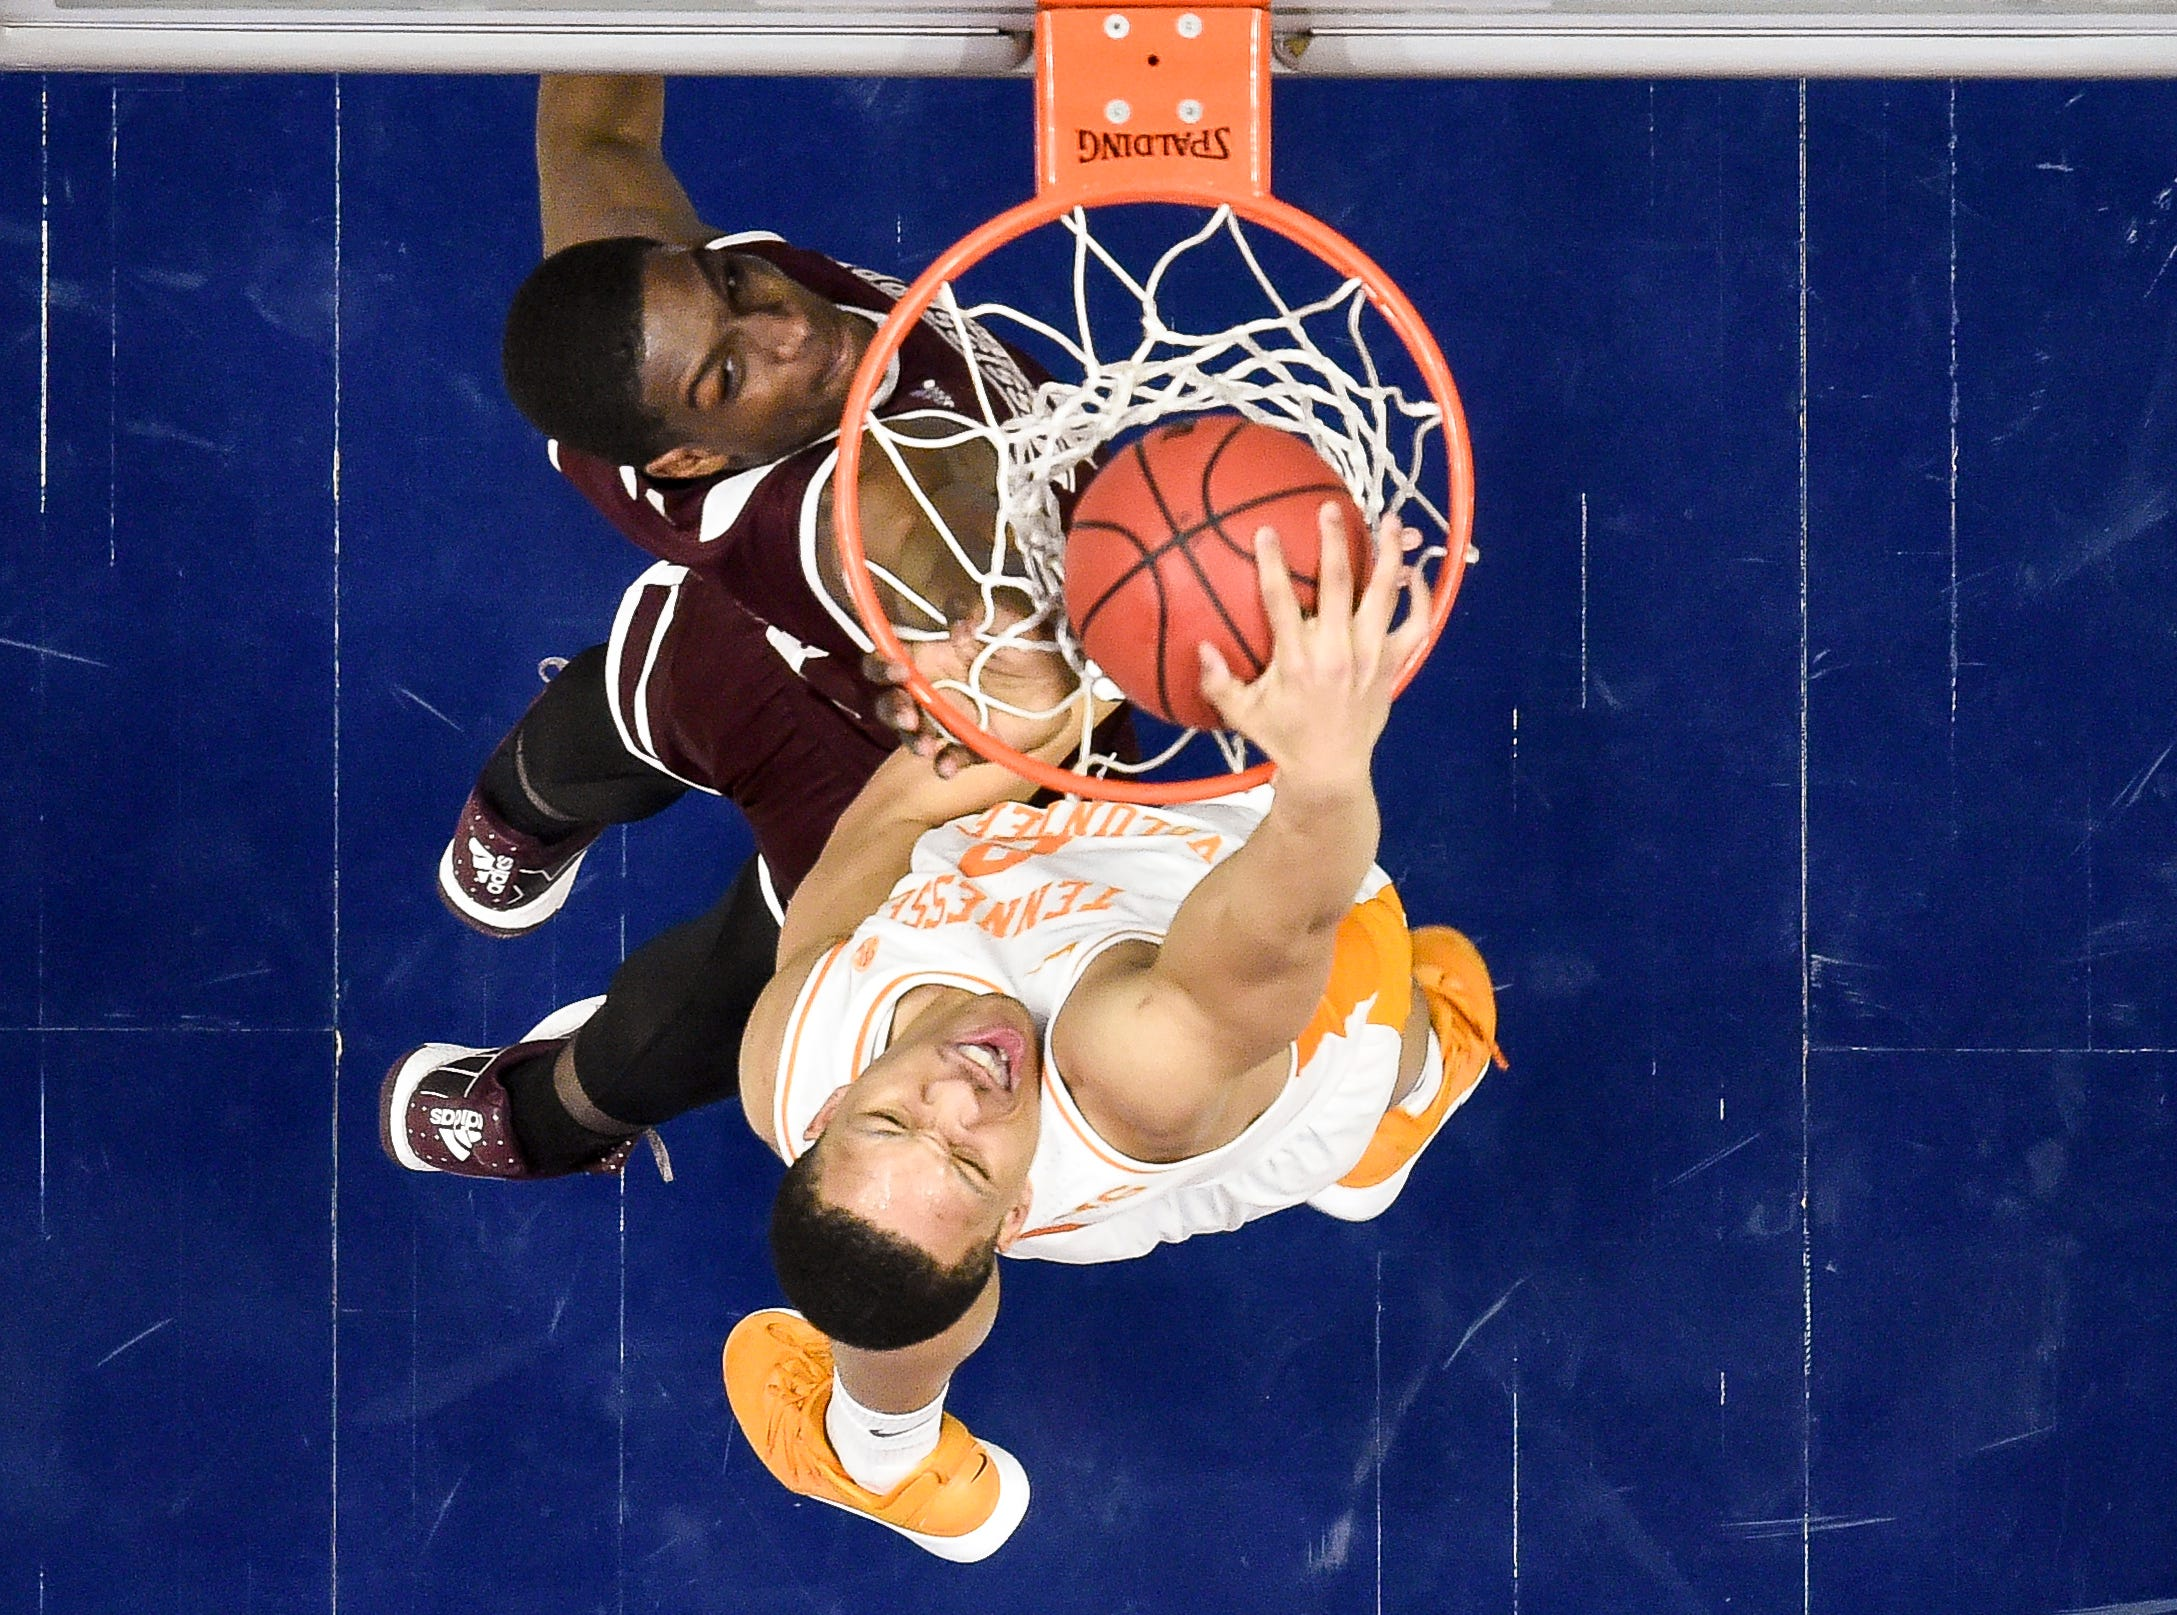 Tennessee forward Grant Williams (2) dunks over Mississippi State forward Reggie Perry (1) during the first half of the SEC Men's Basketball Tournament game at Bridgestone Arena in Nashville, Tenn., Friday, March 15, 2019.